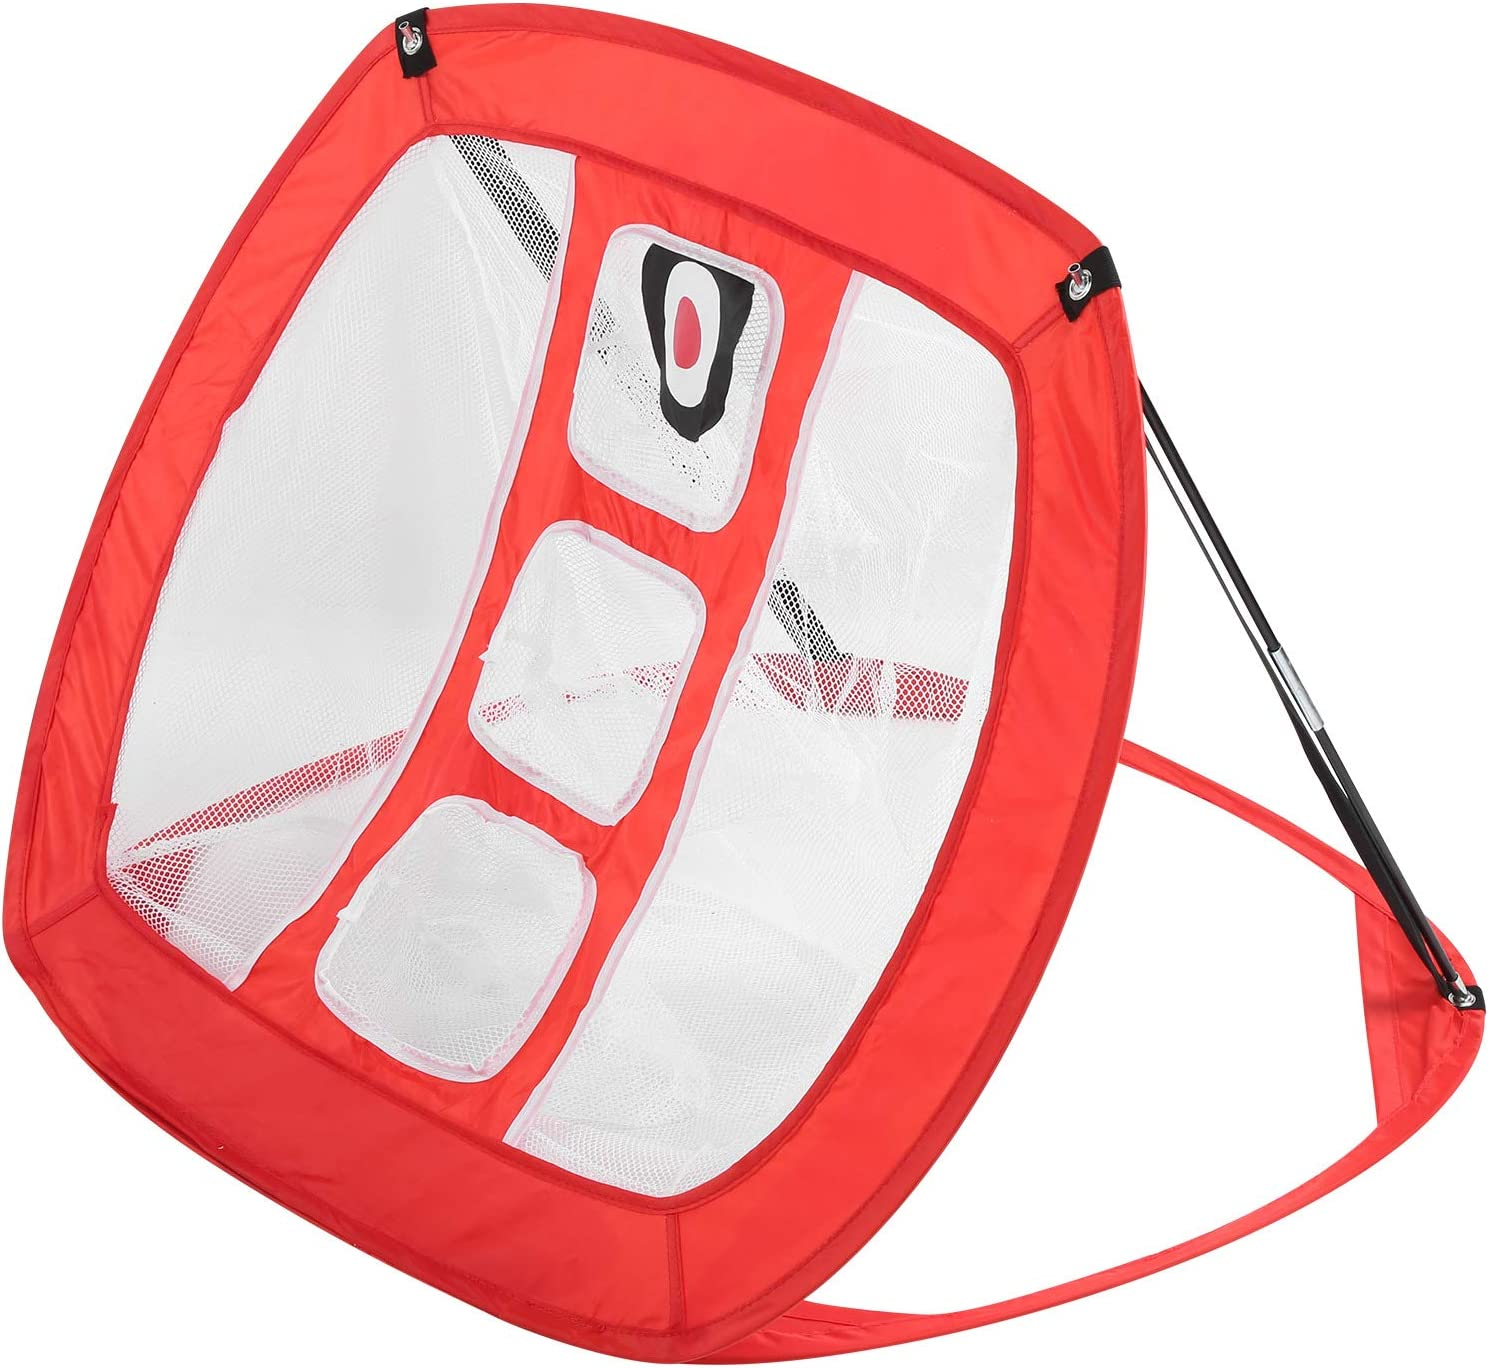 Fybida Nylon It is Max 49% OFF very popular Accessories Portable Golf Pitching Practical Cages